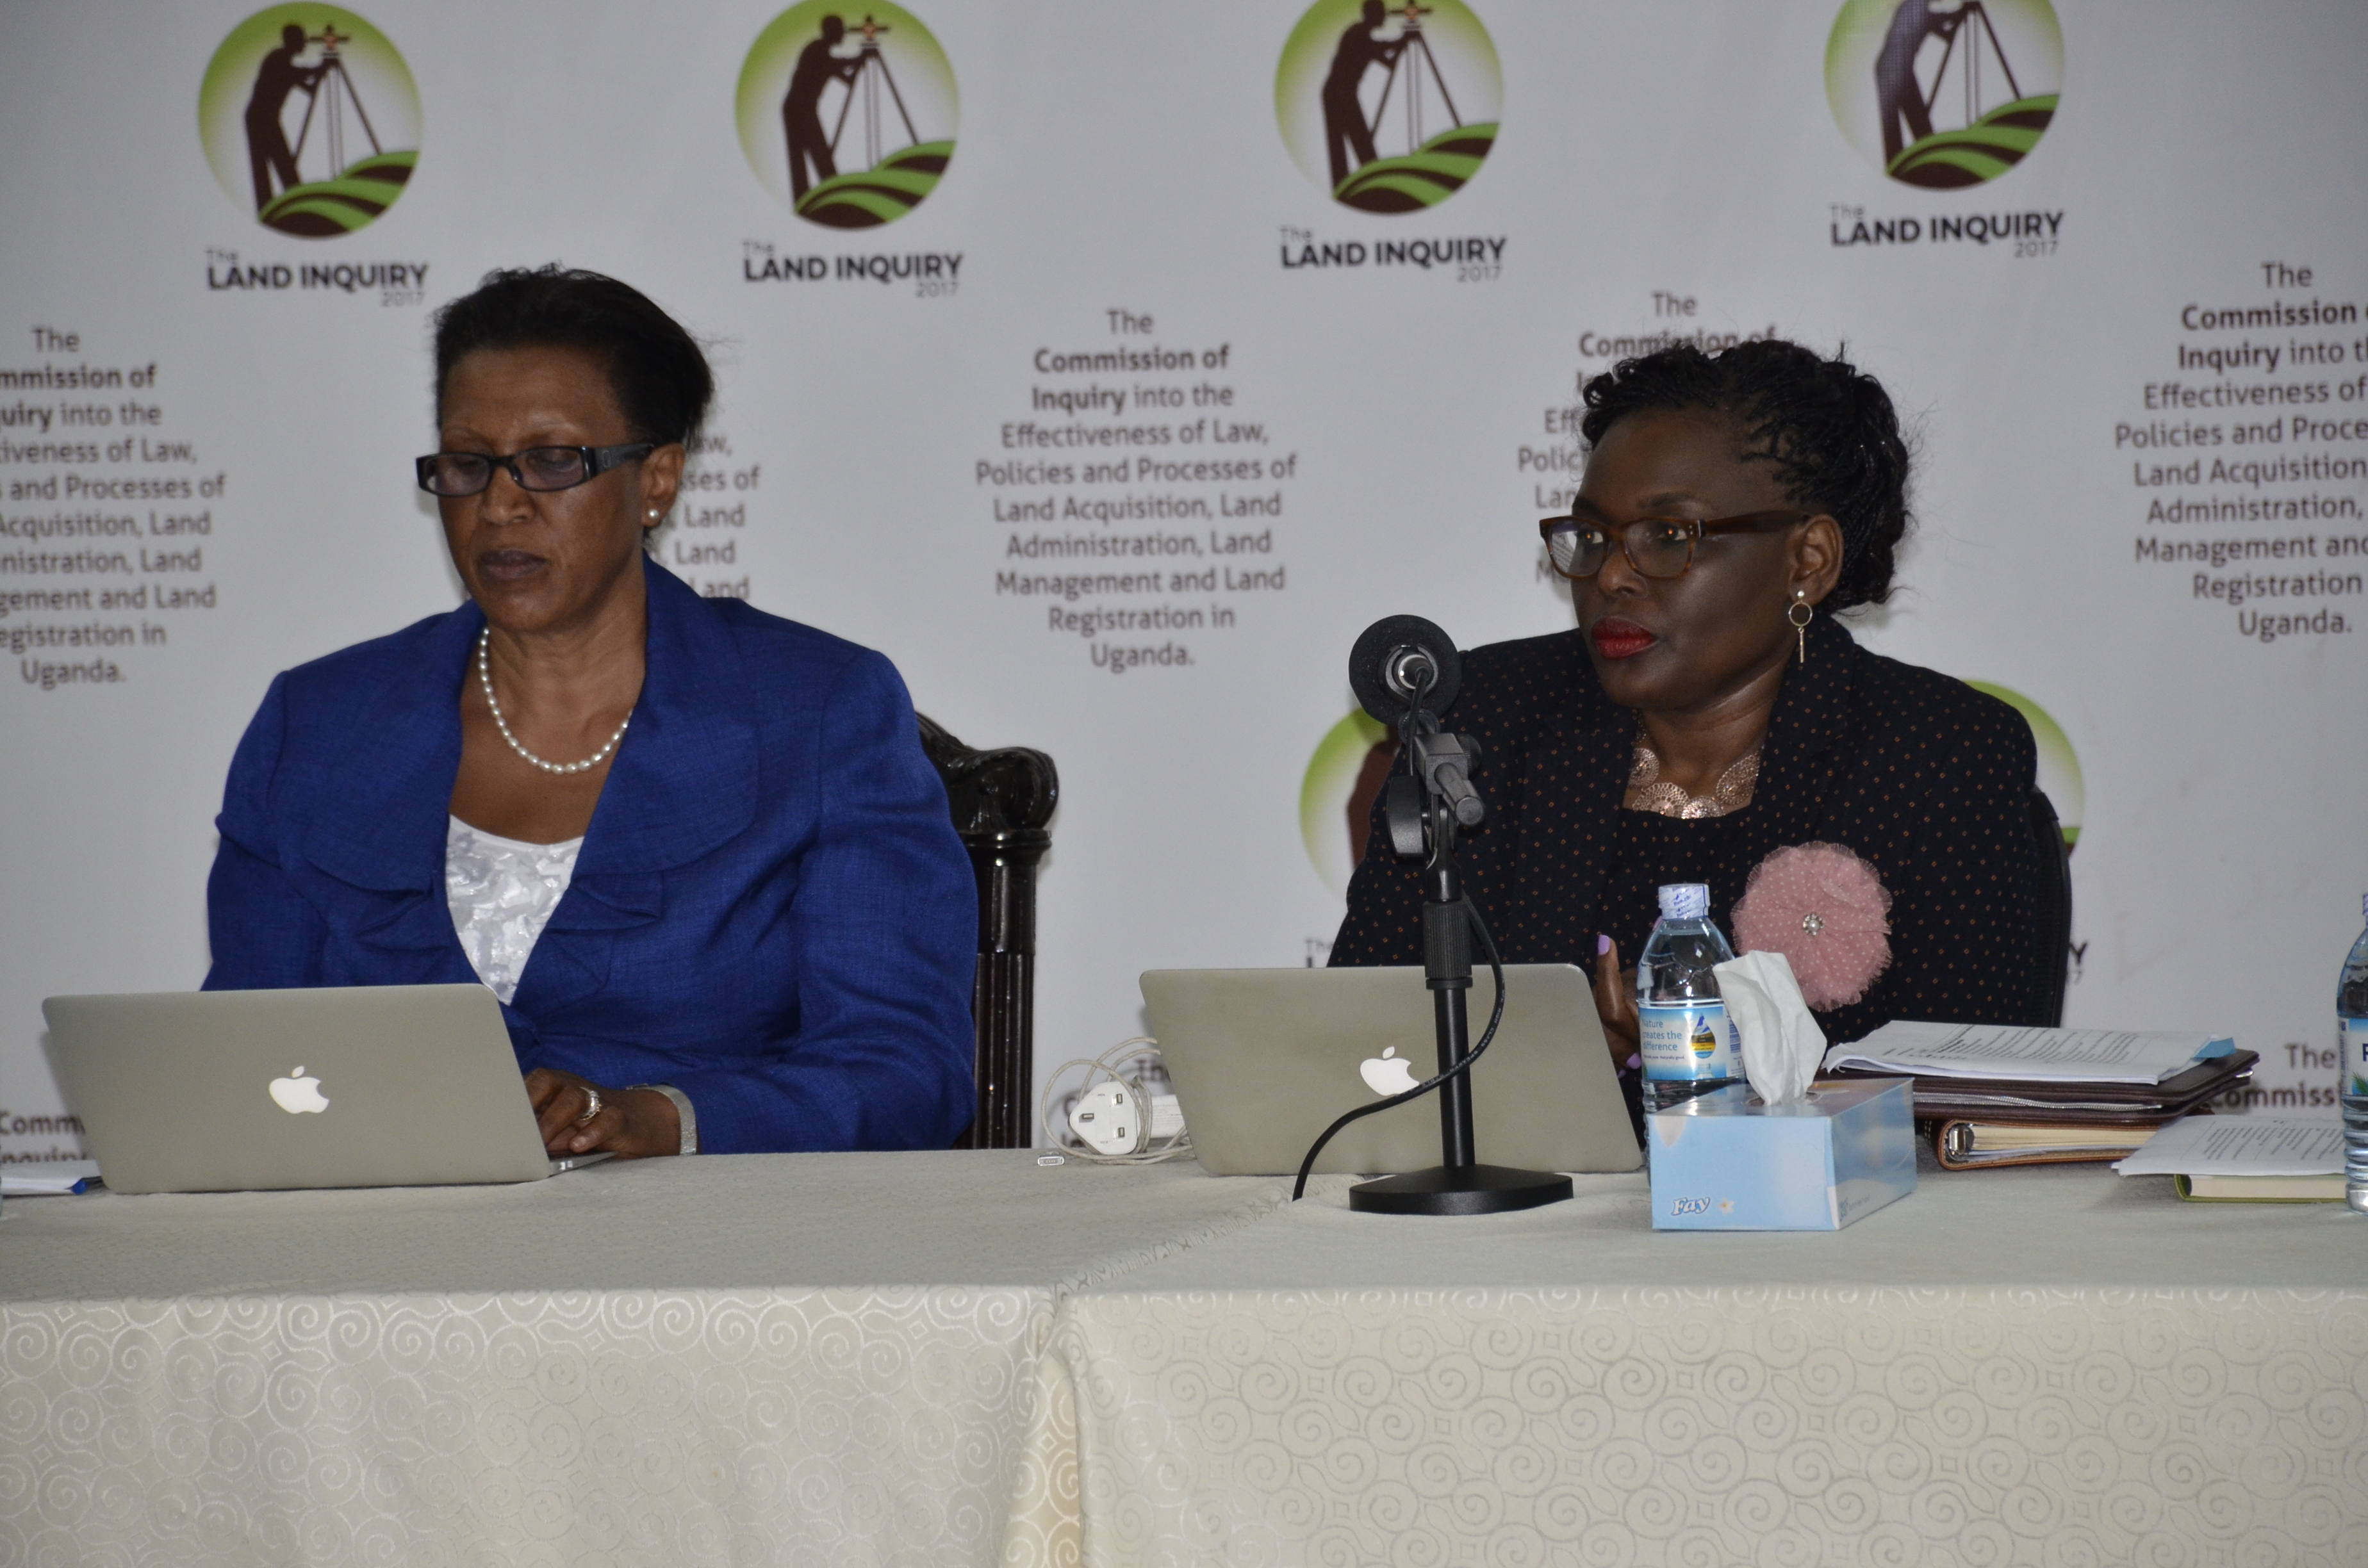 Commission's head Justice Catherine Bamugemereire (right) and fellow Commission Mary Oduka Ochan